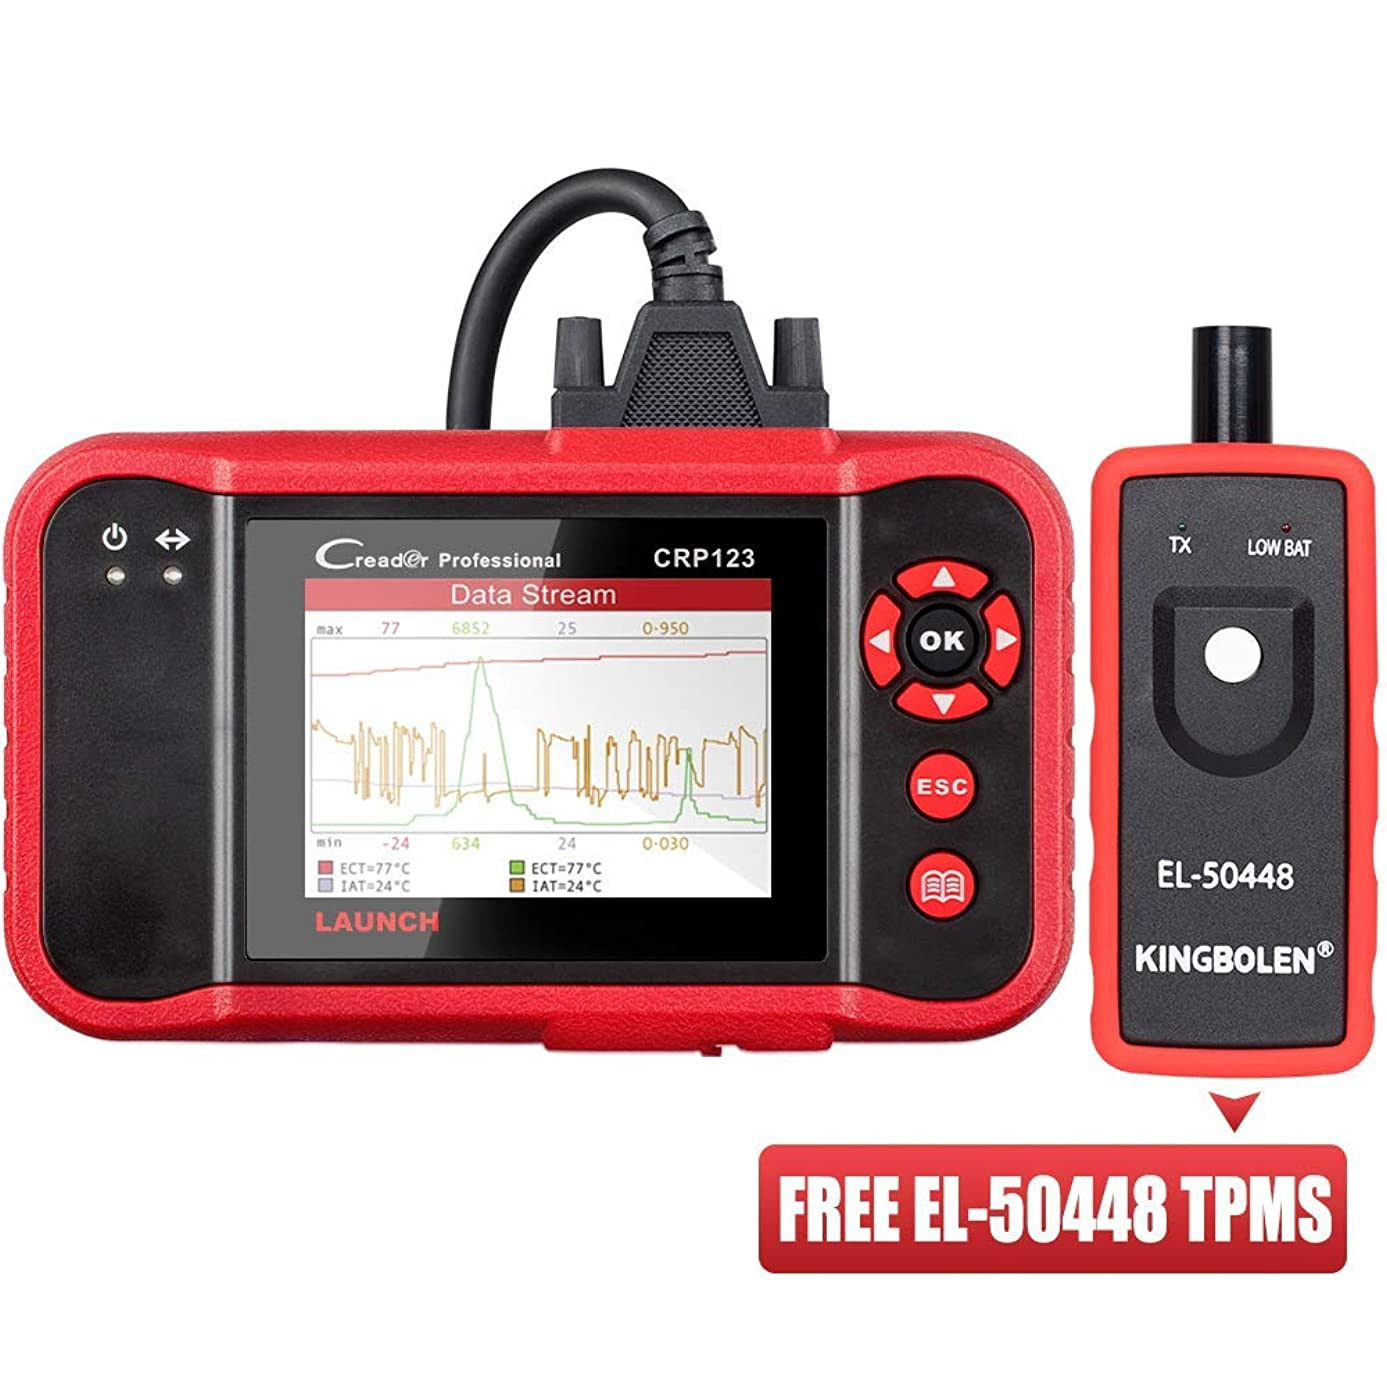 LAUNCH OBD2 Scanner CRP123 Check Engine ABS Airbag Transmission Automotive Code Reader Car Diagnostic Scan Tool, EL-50448 TPMS As Gift,Free Lifetime Update